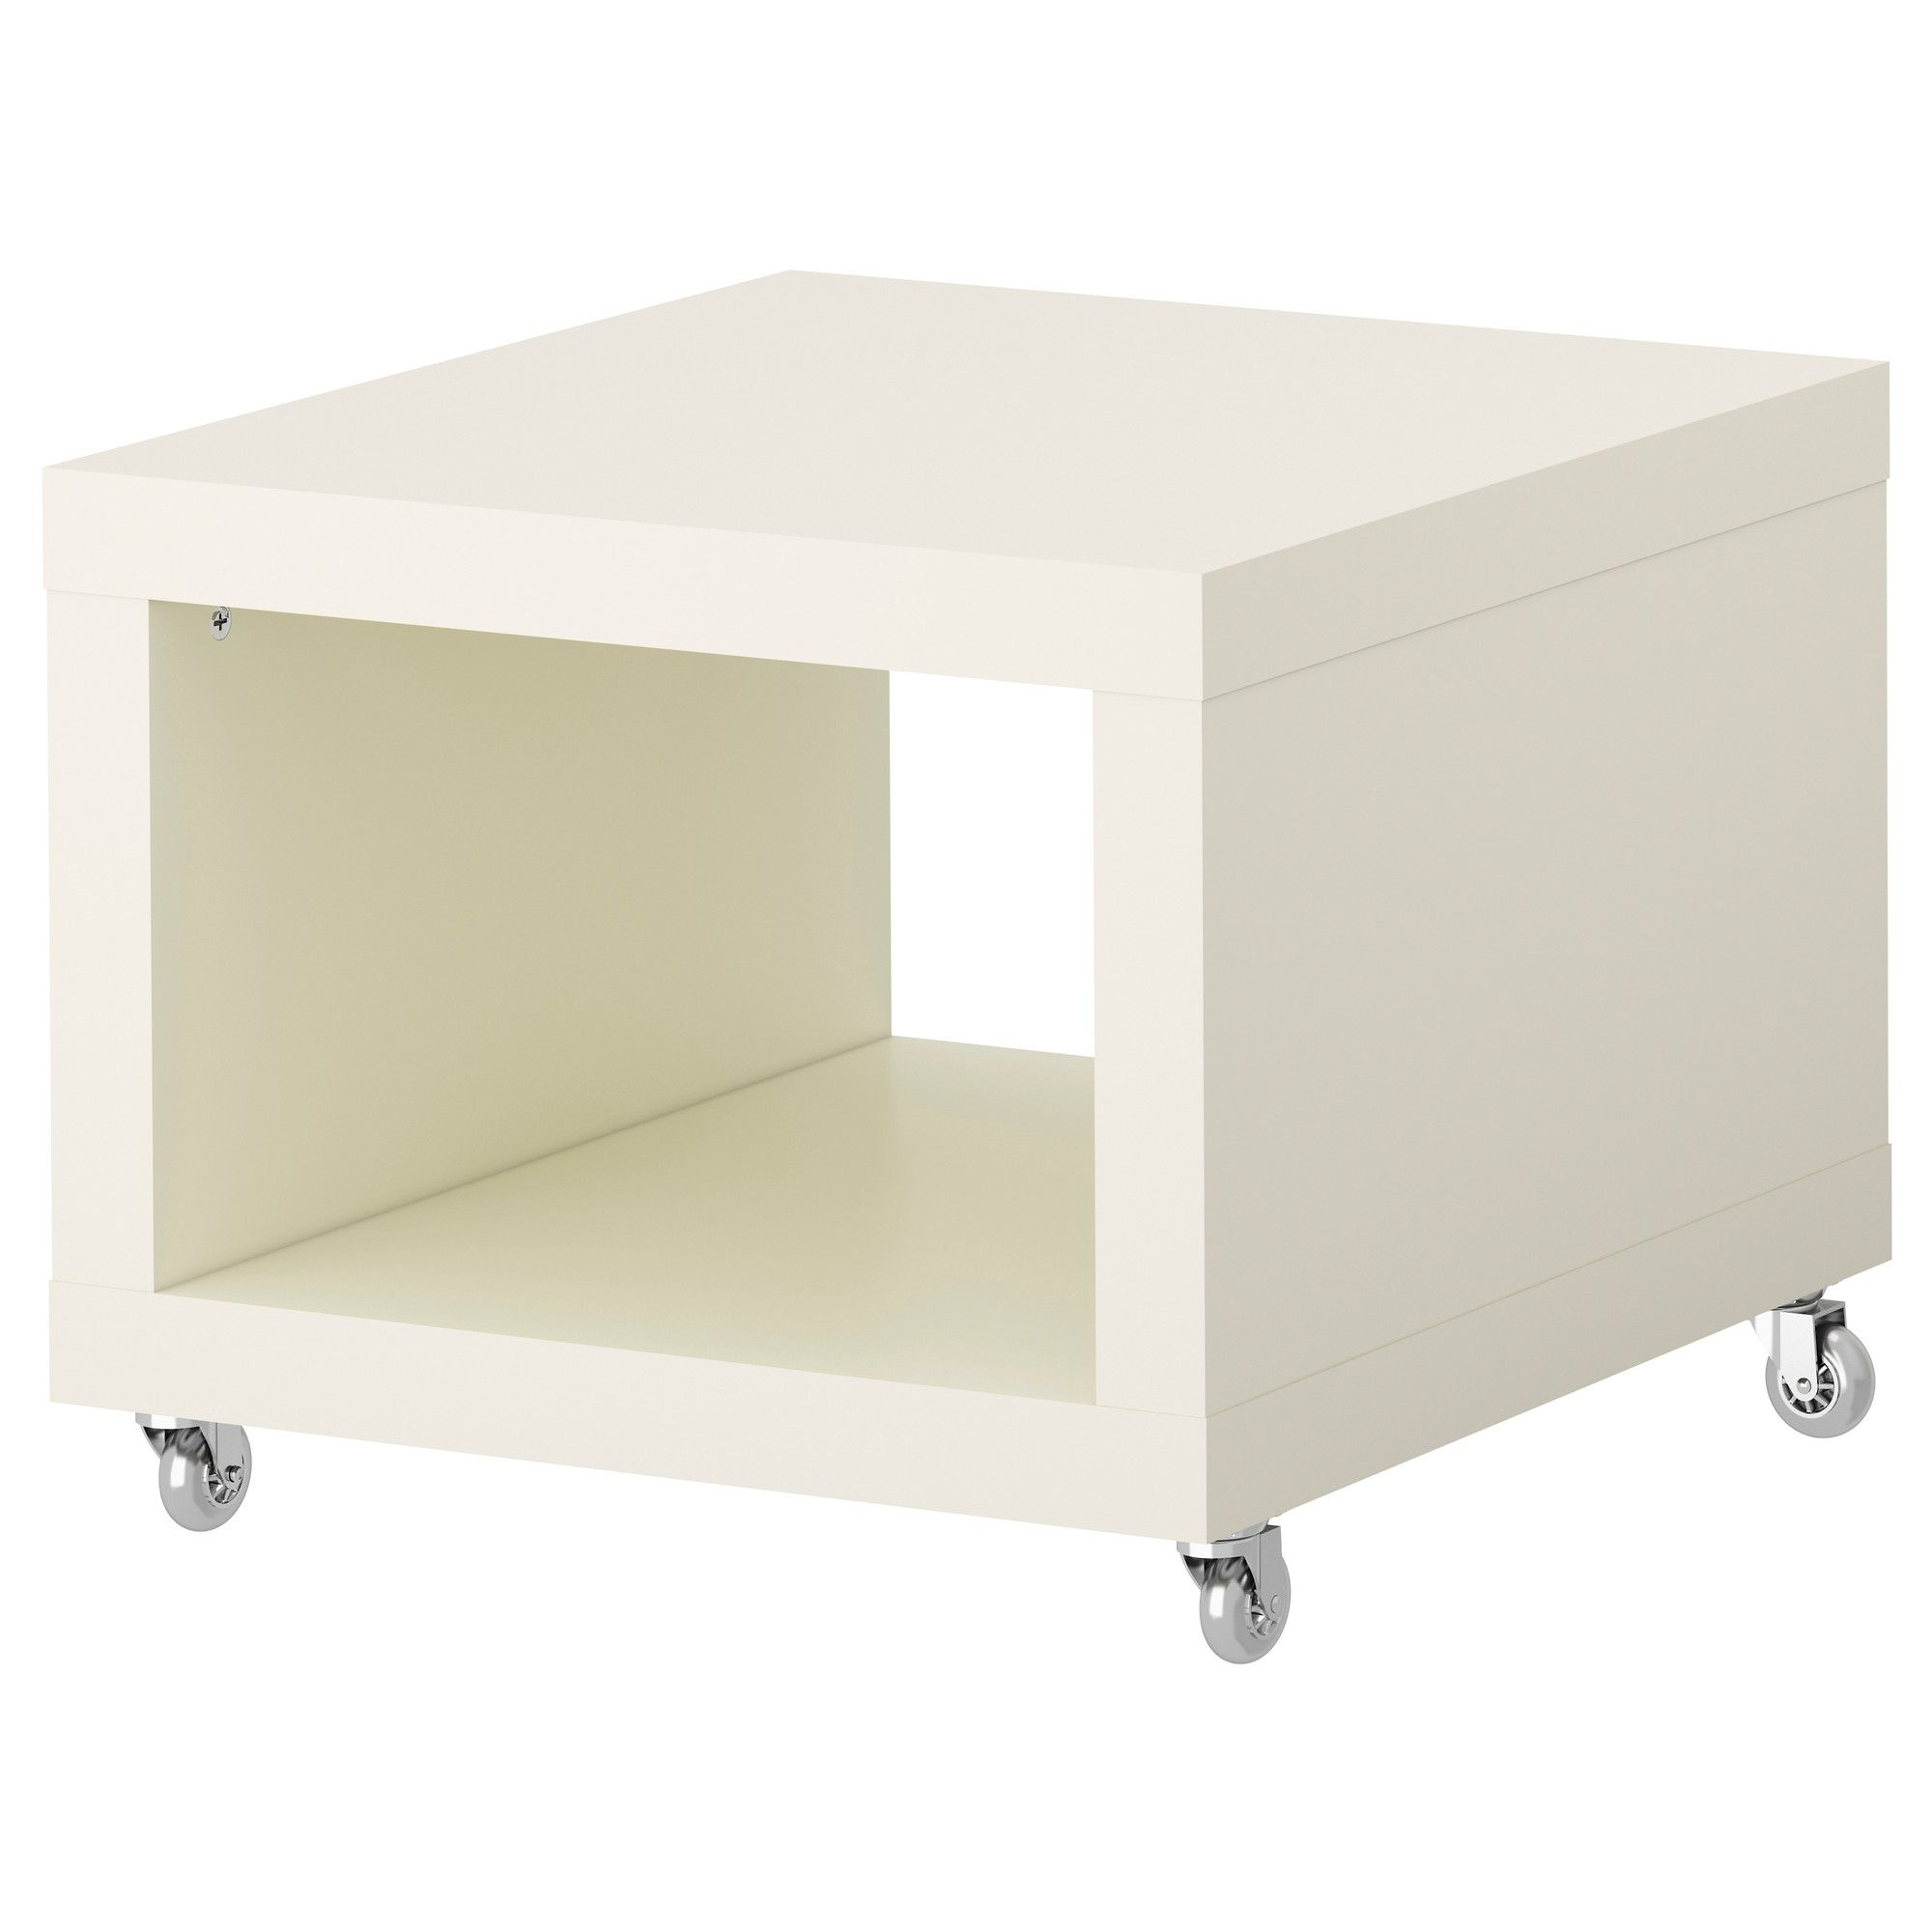 Tables Roulantes Ikea Tables Roulantes Ikea Table Roulante Ikea Luxe The Full